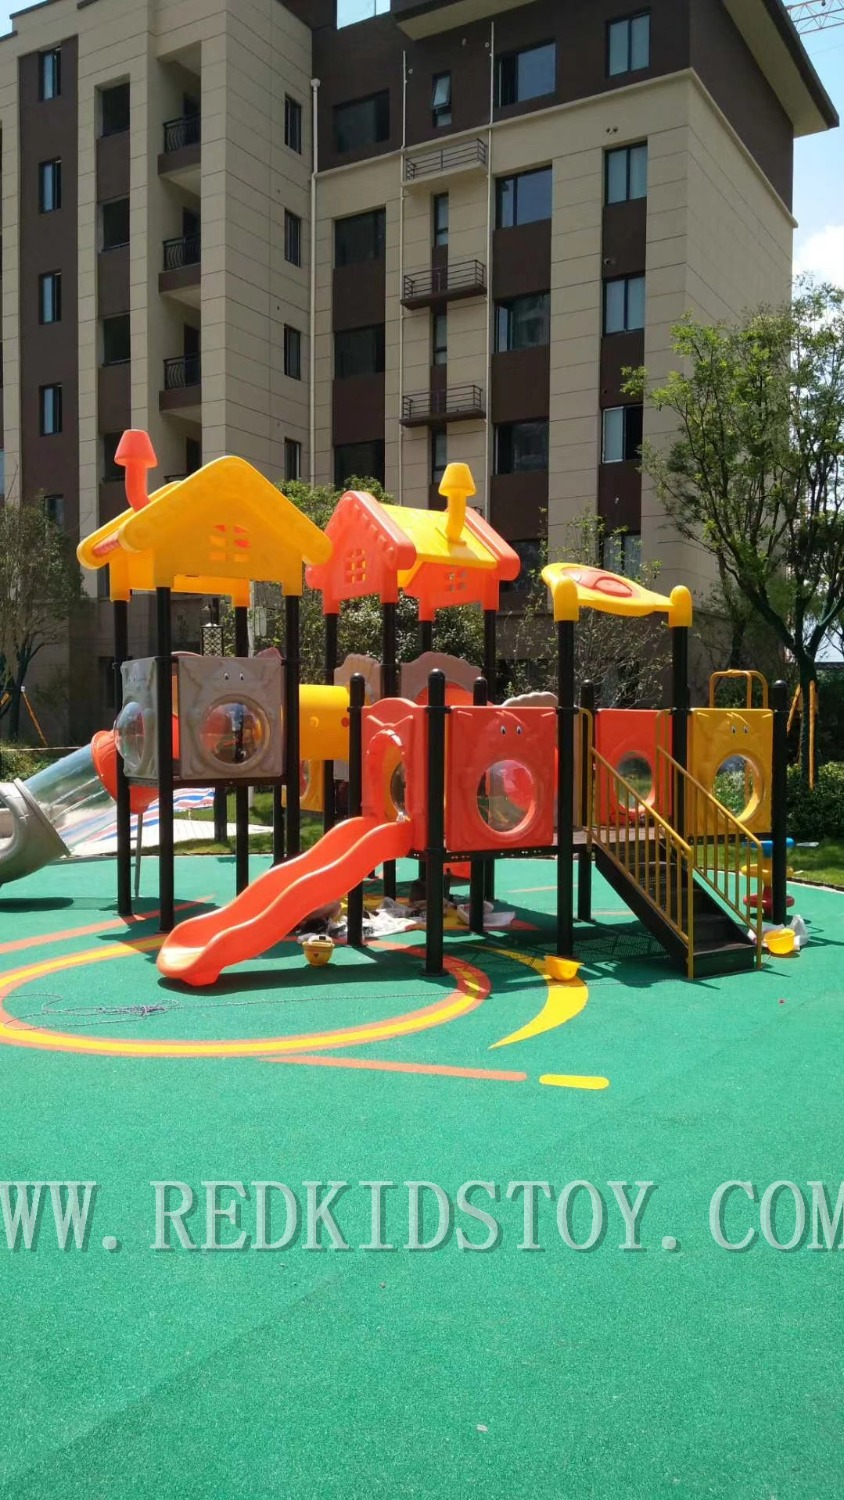 Superb Us 4839 0 Premium Quality Tree House Roof Series Outdoor Play Equipment For Children Hz 8722A In Playground From Sports Entertainment On Download Free Architecture Designs Scobabritishbridgeorg